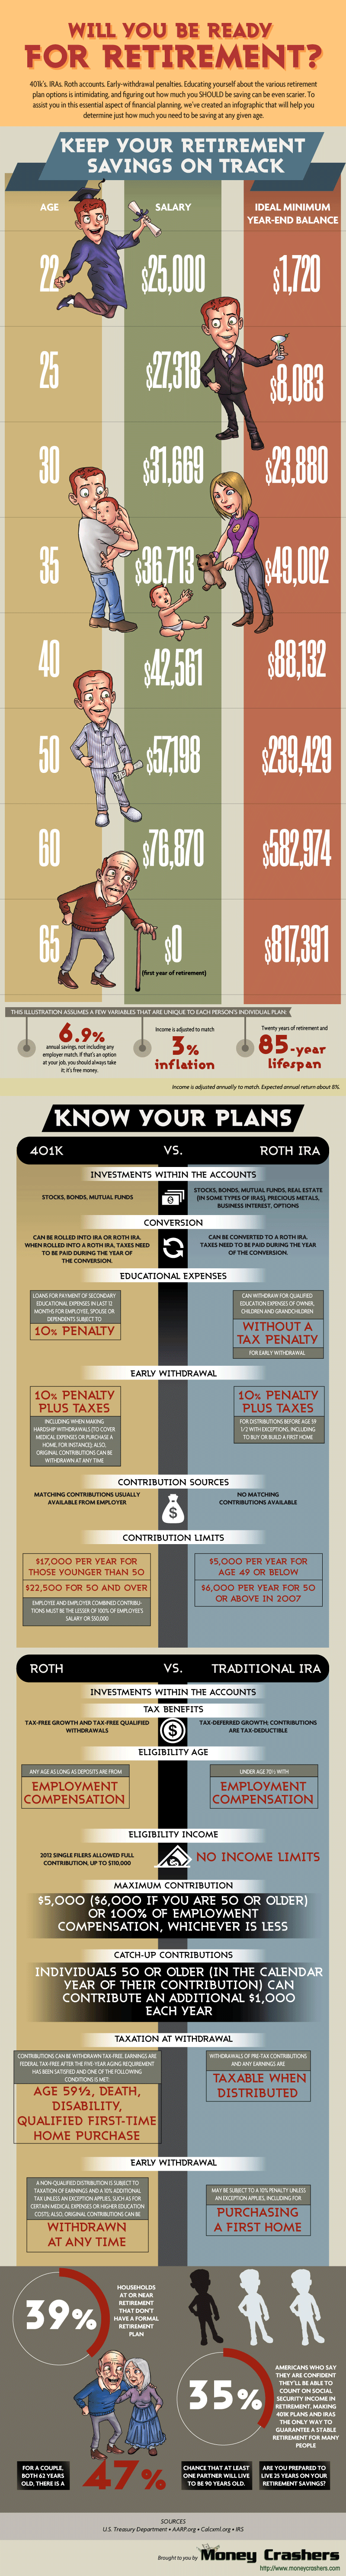 Financegraphic  Will You Be Ready For Retirement?  401k, Ira, Roth